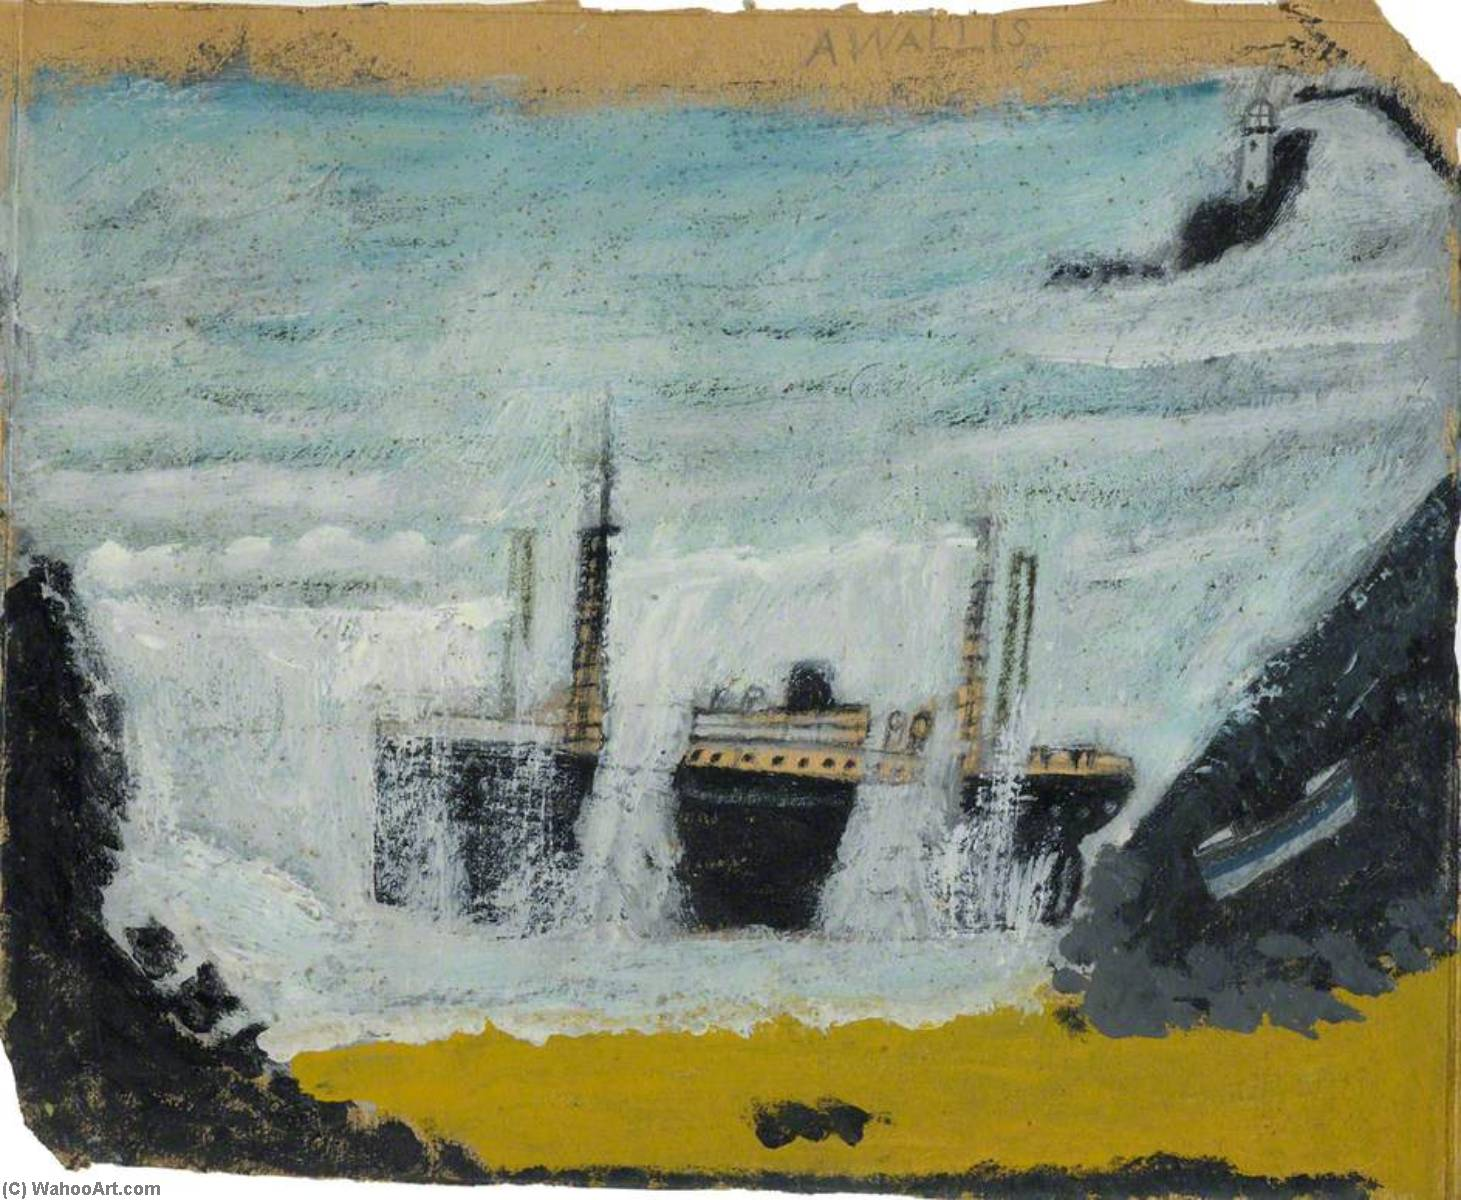 Shipwreck 1, the Wreck of the 'Alba', 1940 by Alfred Wallis (1855-1942, United Kingdom) | WahooArt.com